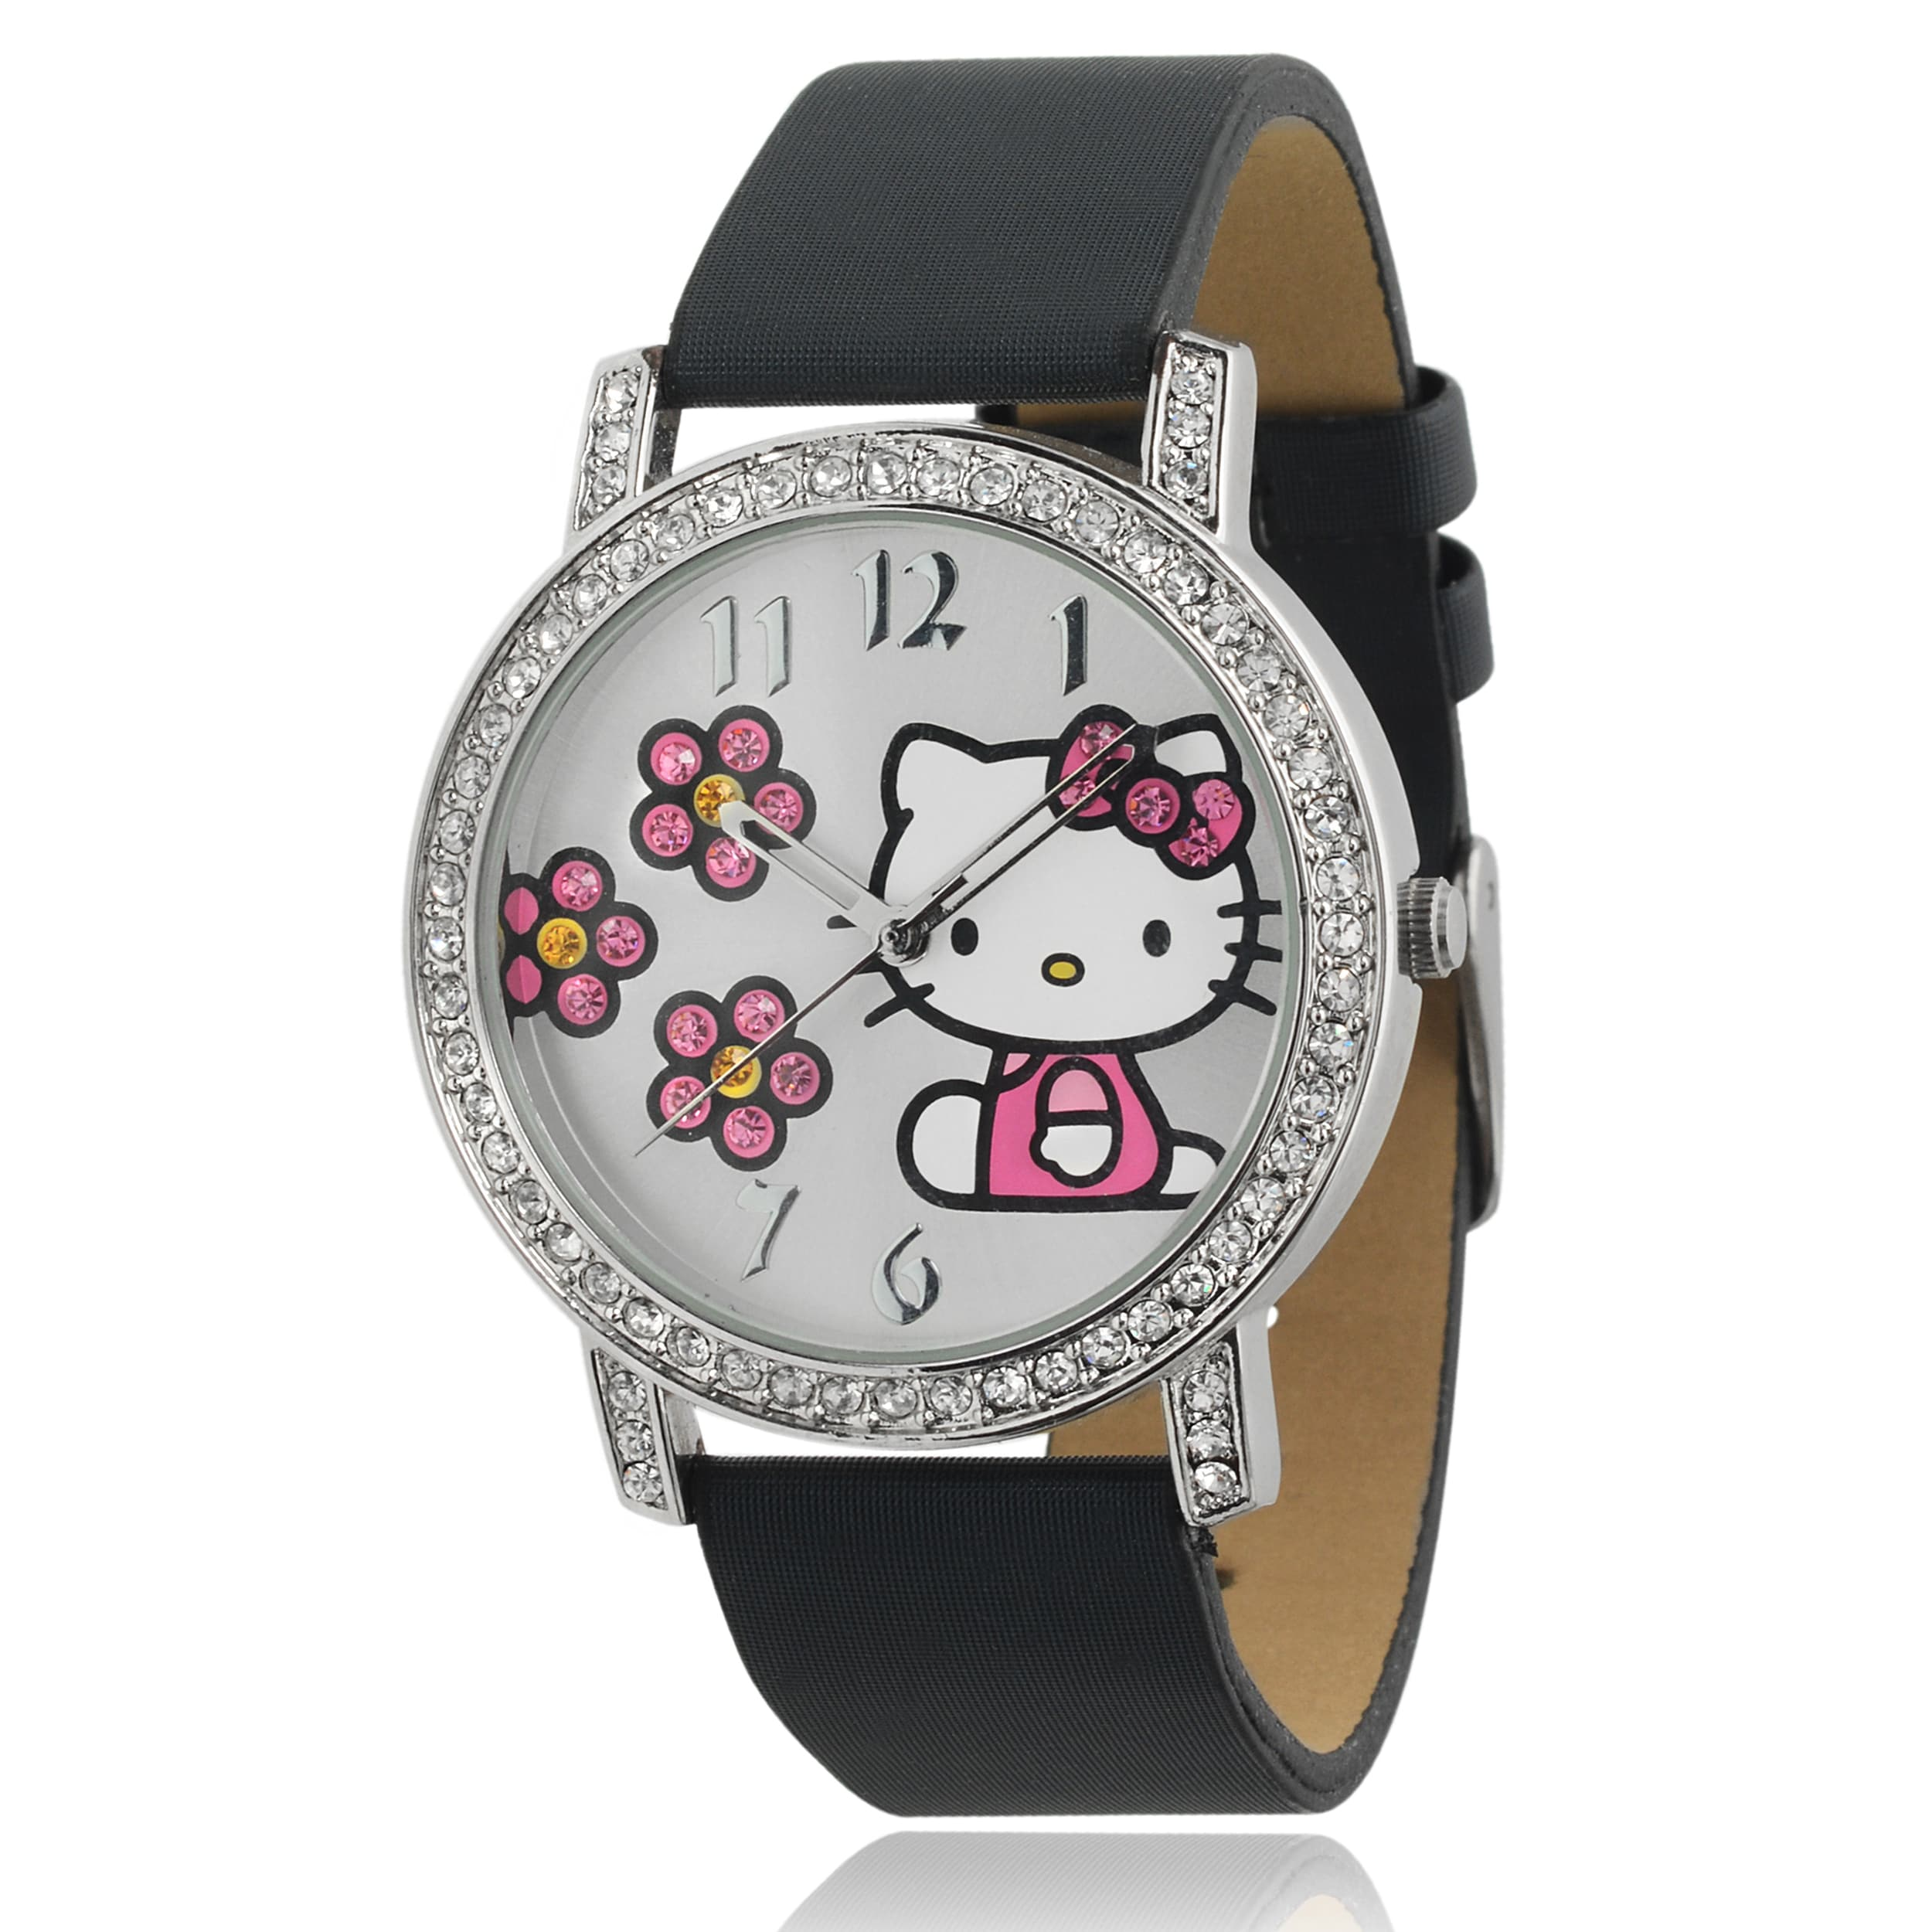 b62e9cb13 Shop Hello Kitty Women's Rhinestone-accented Satin Faux Leather Watch -  Free Shipping On Orders Over $45 - Overstock - 9017363